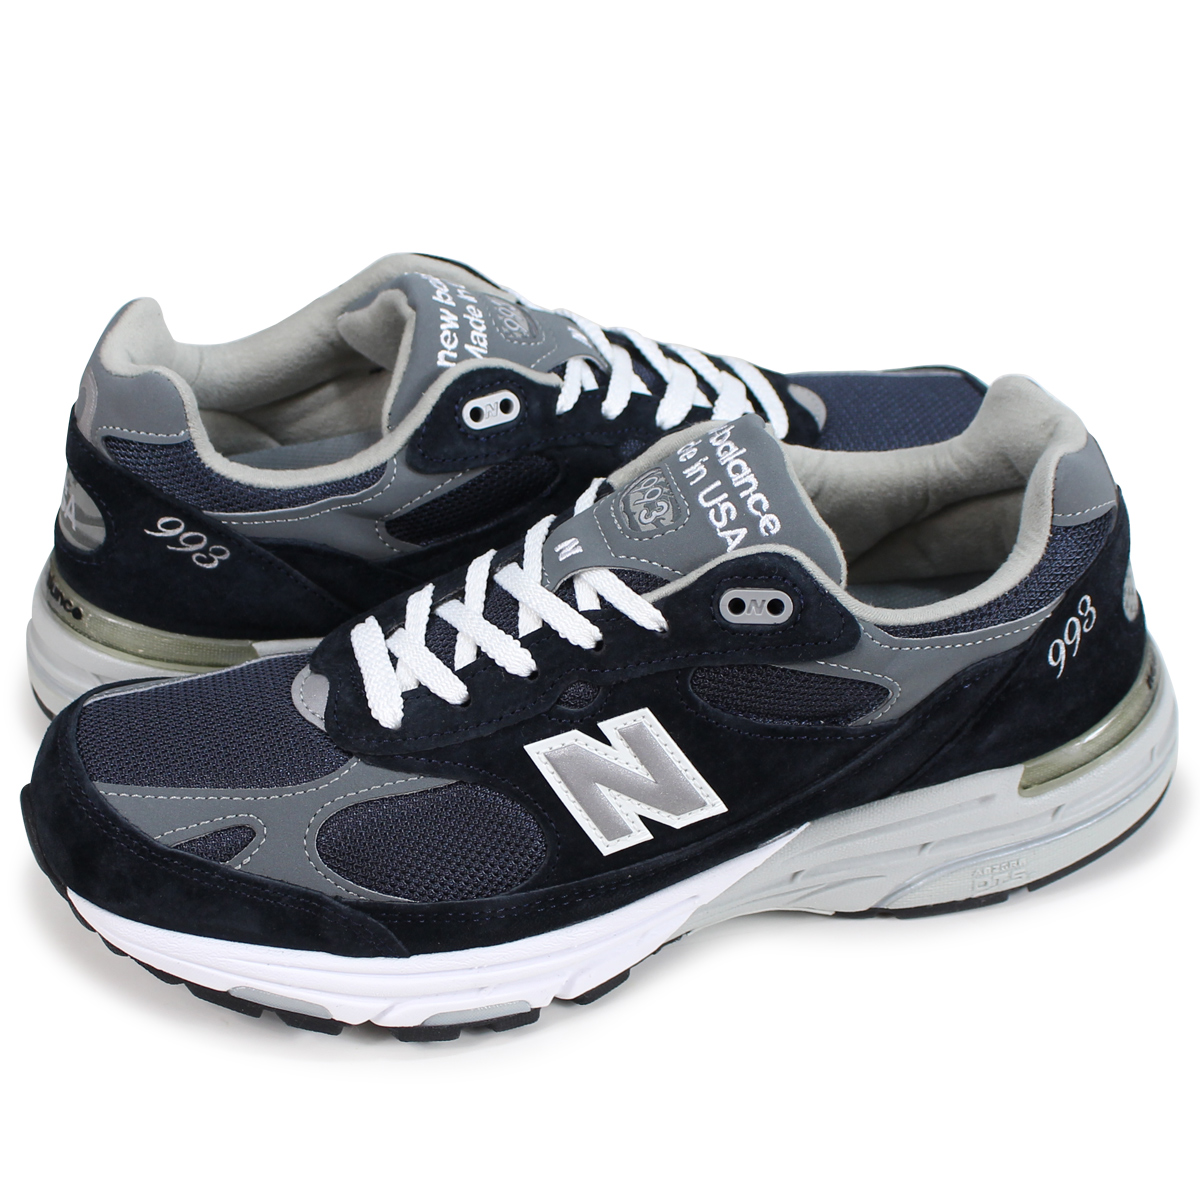 best sneakers a1bd4 7c95e new balance MR993NV New Balance 993 men's sneakers D Wise MADE IN USA navy